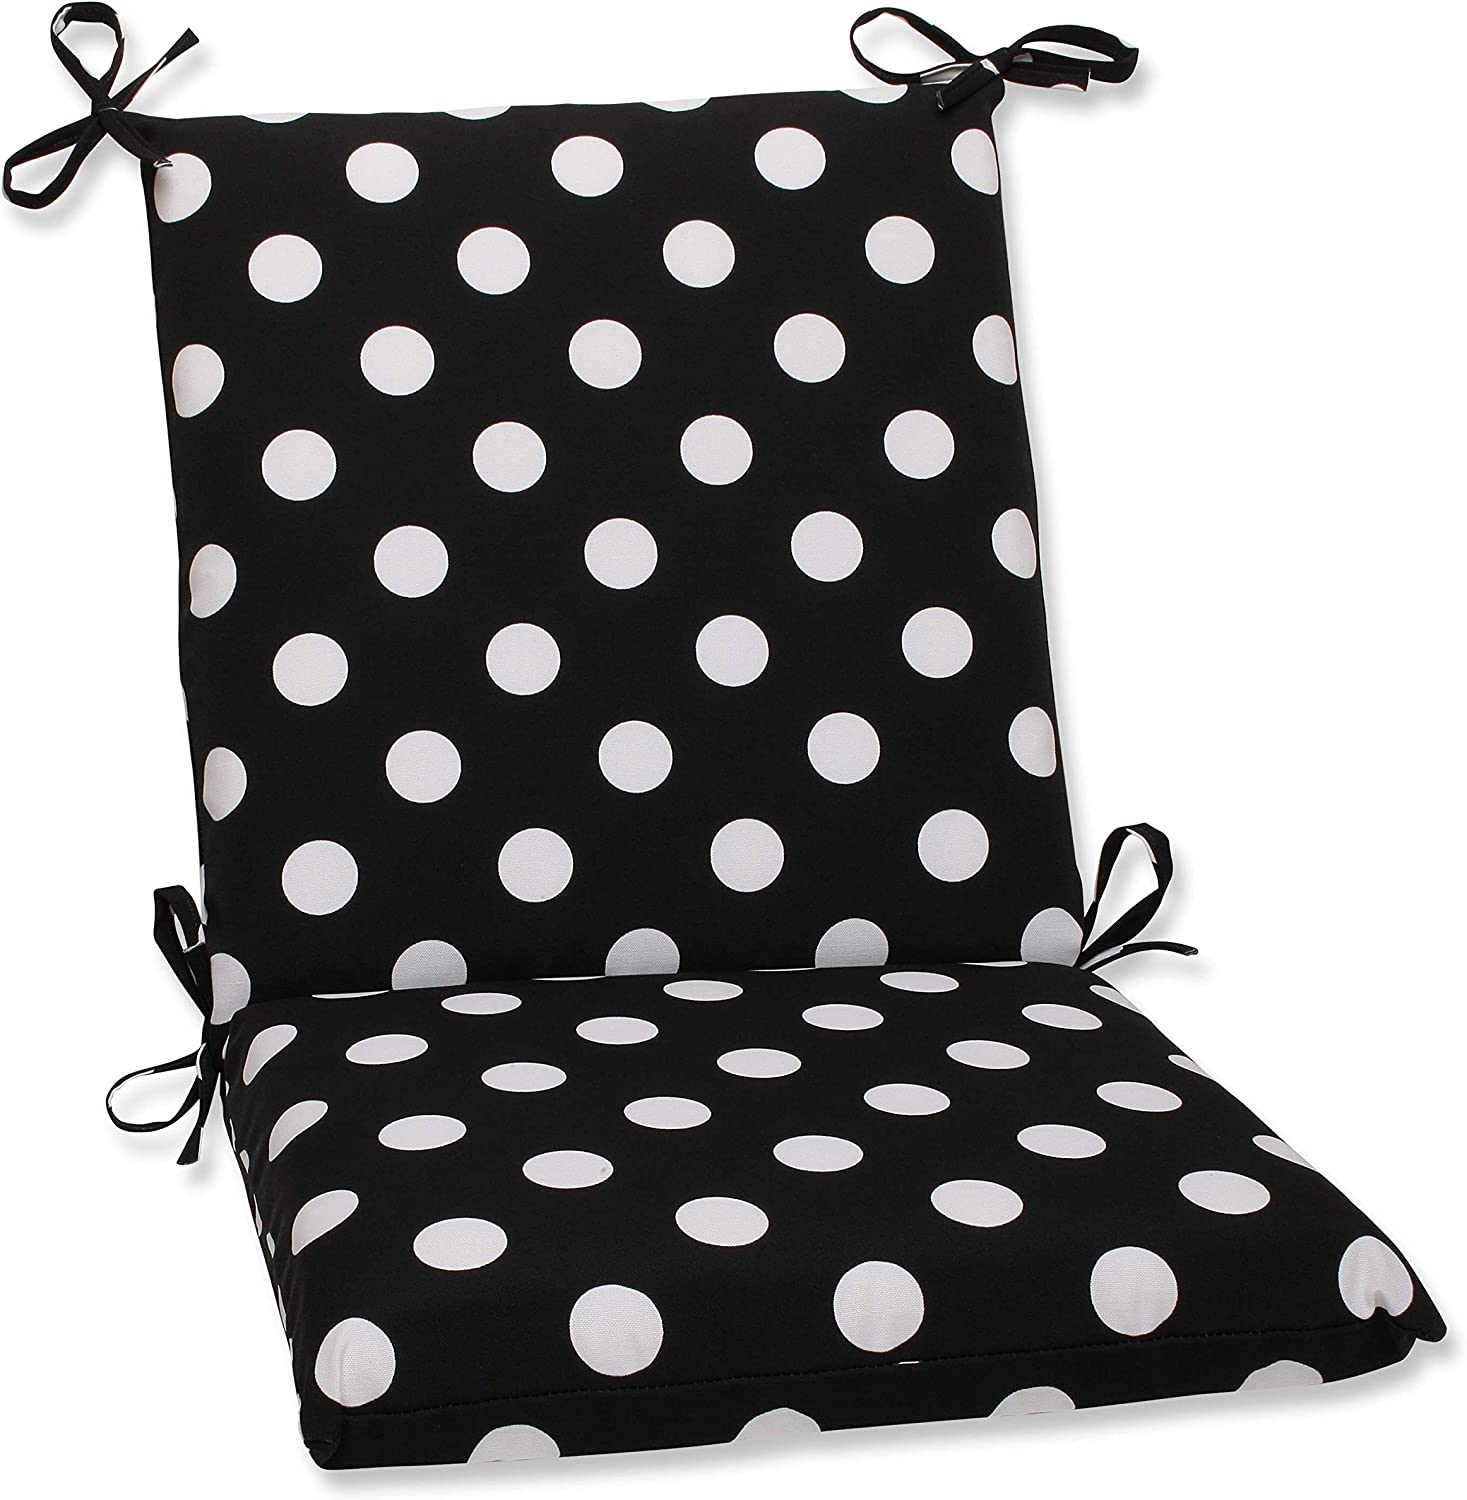 Pillow Perfect Indoor Outdoor Black White Polka Dot Chair Cushion, Squared